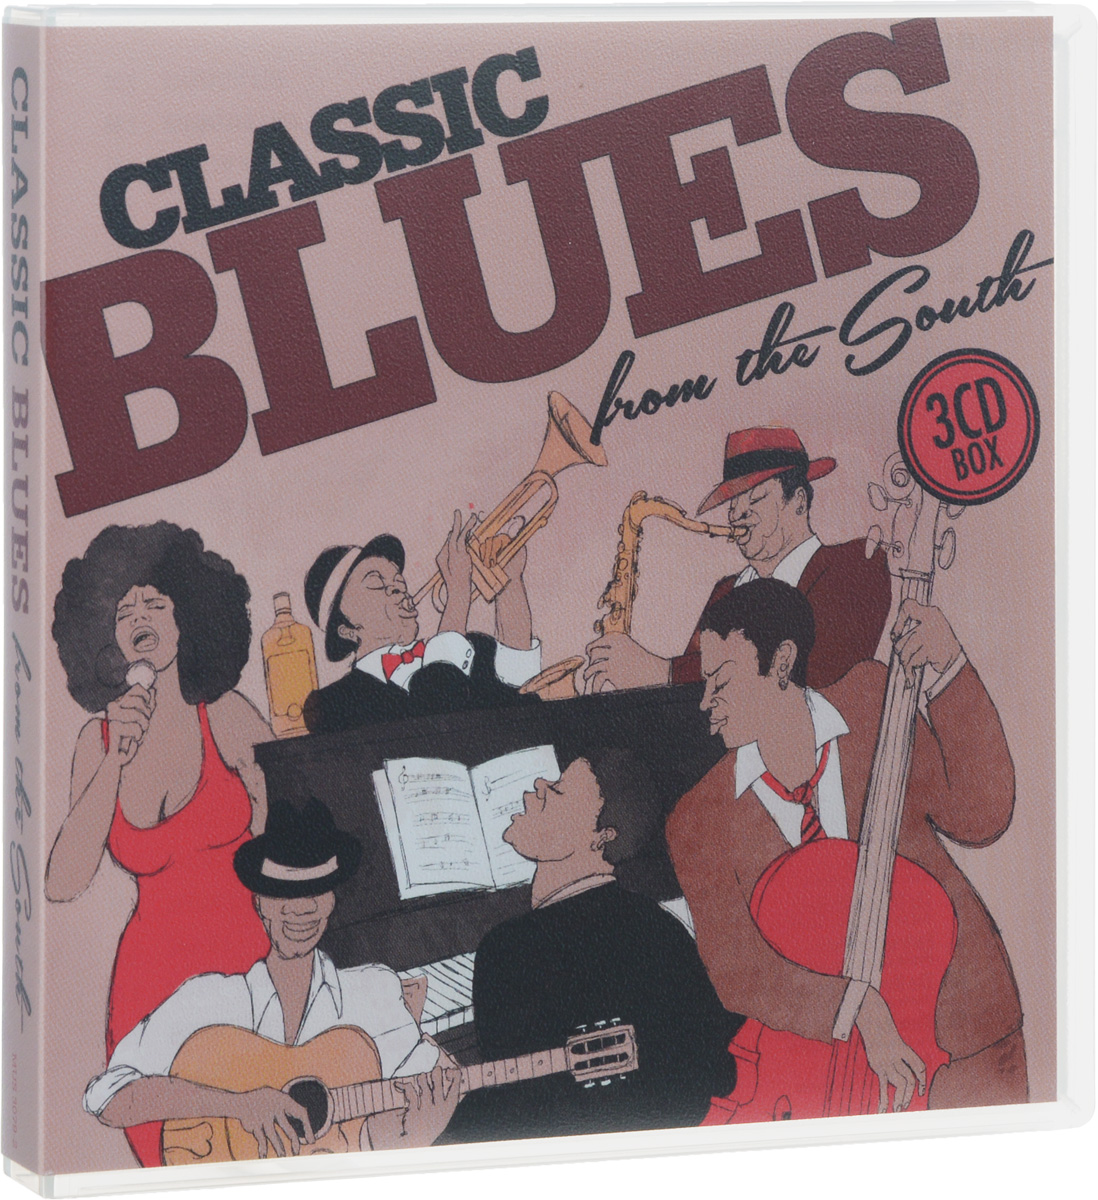 Classic Blues From The South (3 CD)